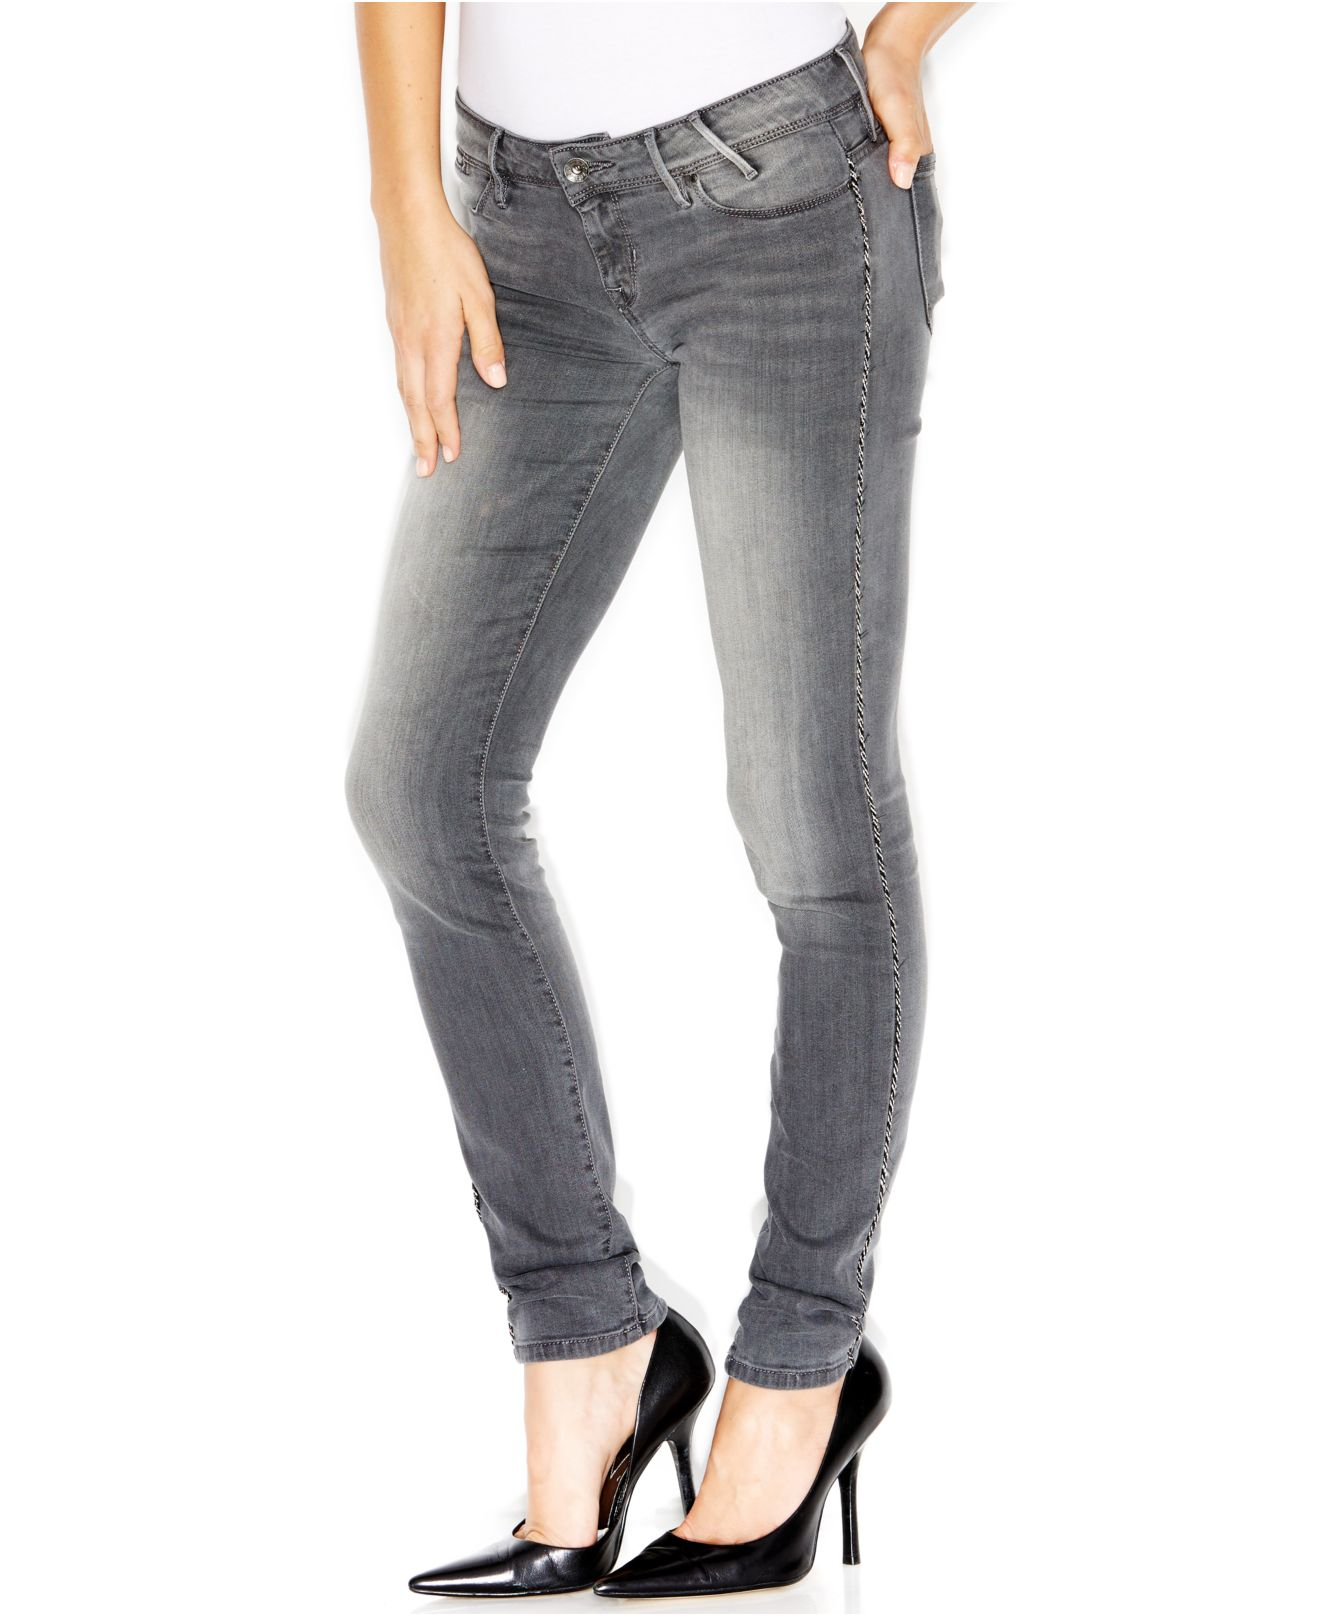 Low rise skinny grey jeans